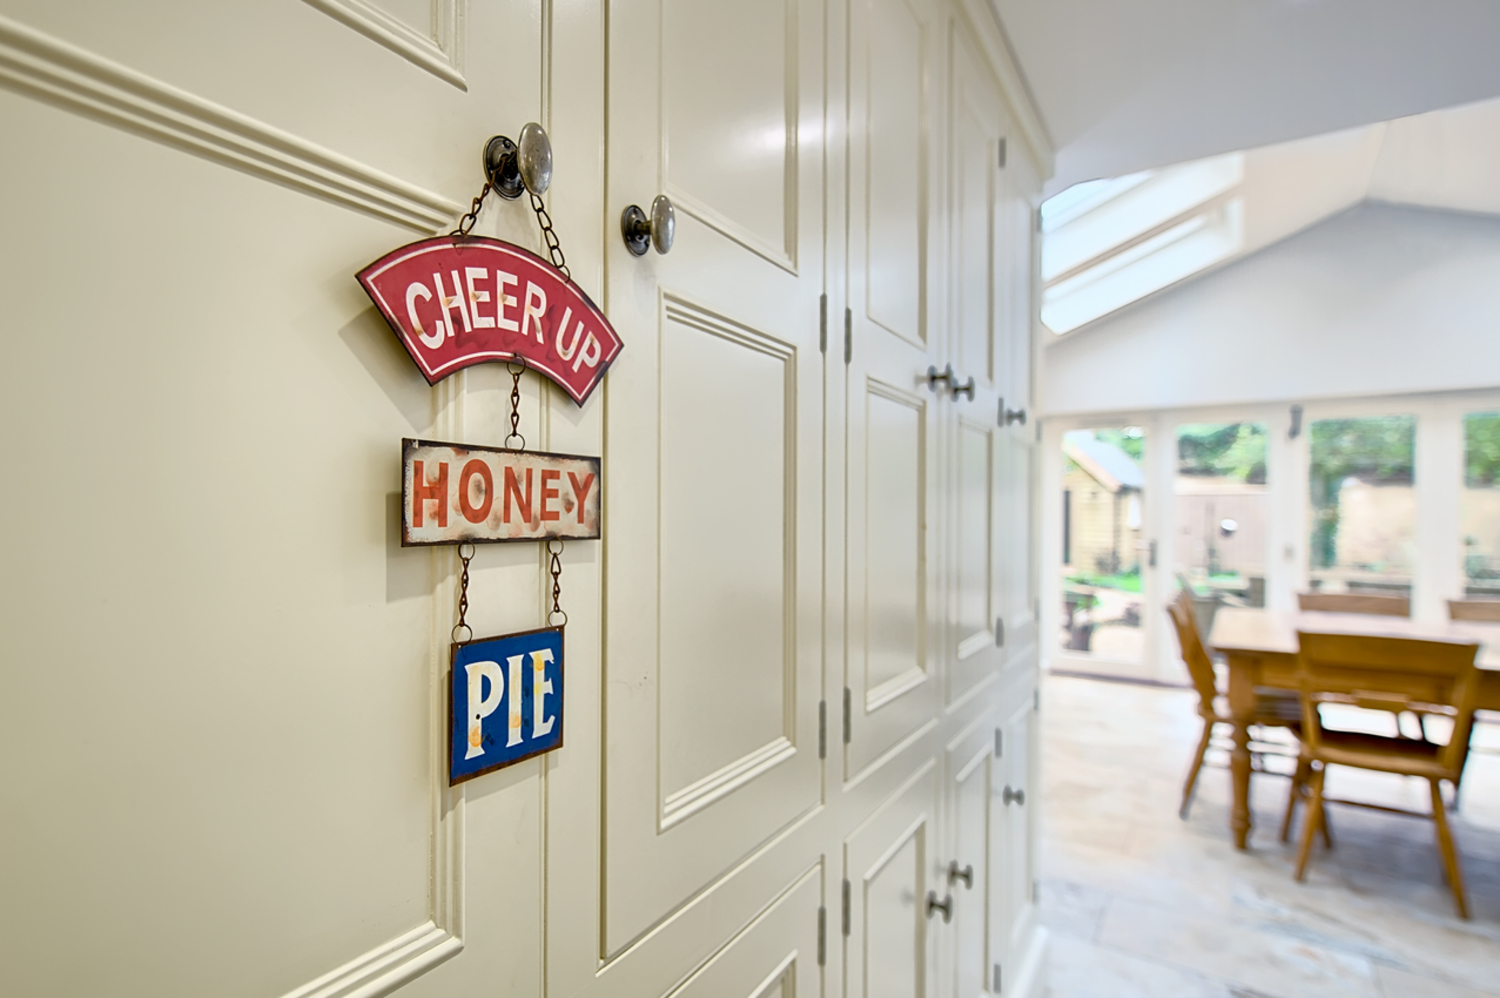 Kitchen cupboards hanged signs of a house redesign by Harvey Norman Architects Cambridge